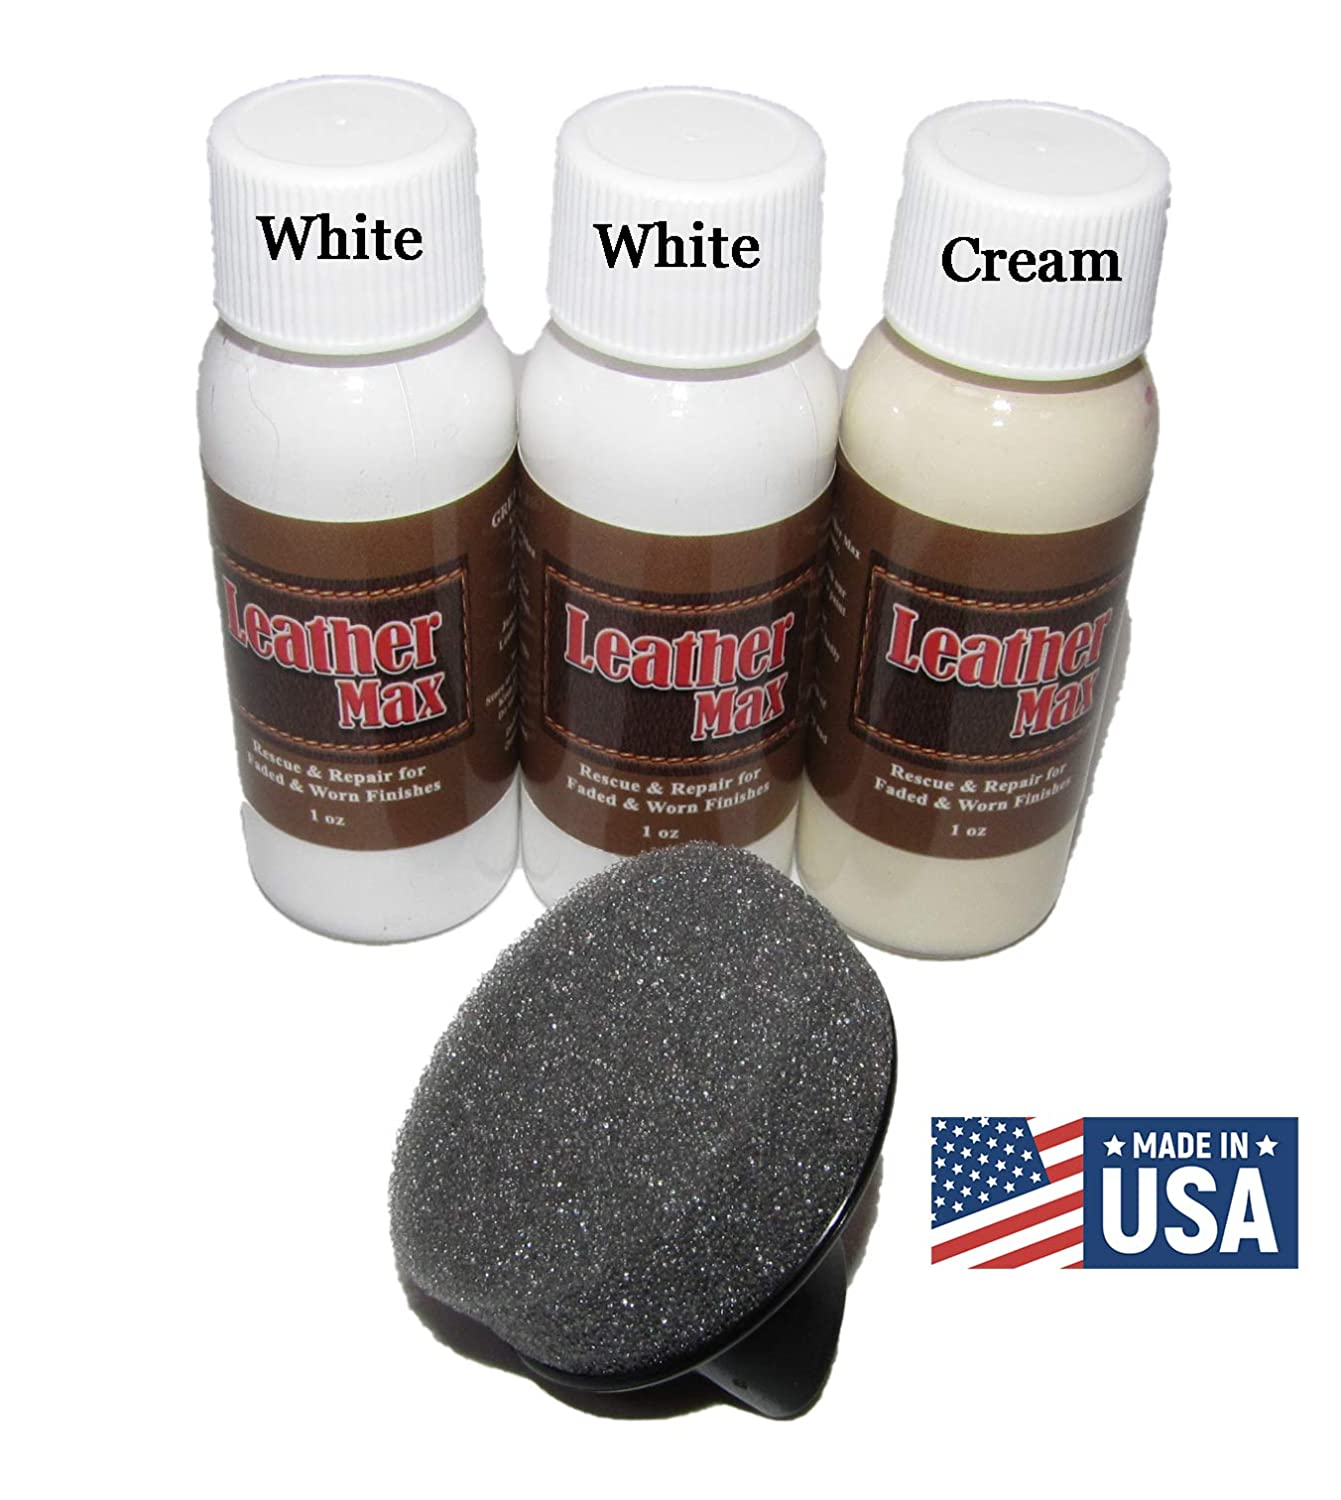 Leather Max Quick Blend Refinish and Repair Kit, Restore, Recolor & Repair / 3 Color Shades to Blend with/Leather Vinyl Bonded and More (White Mix)